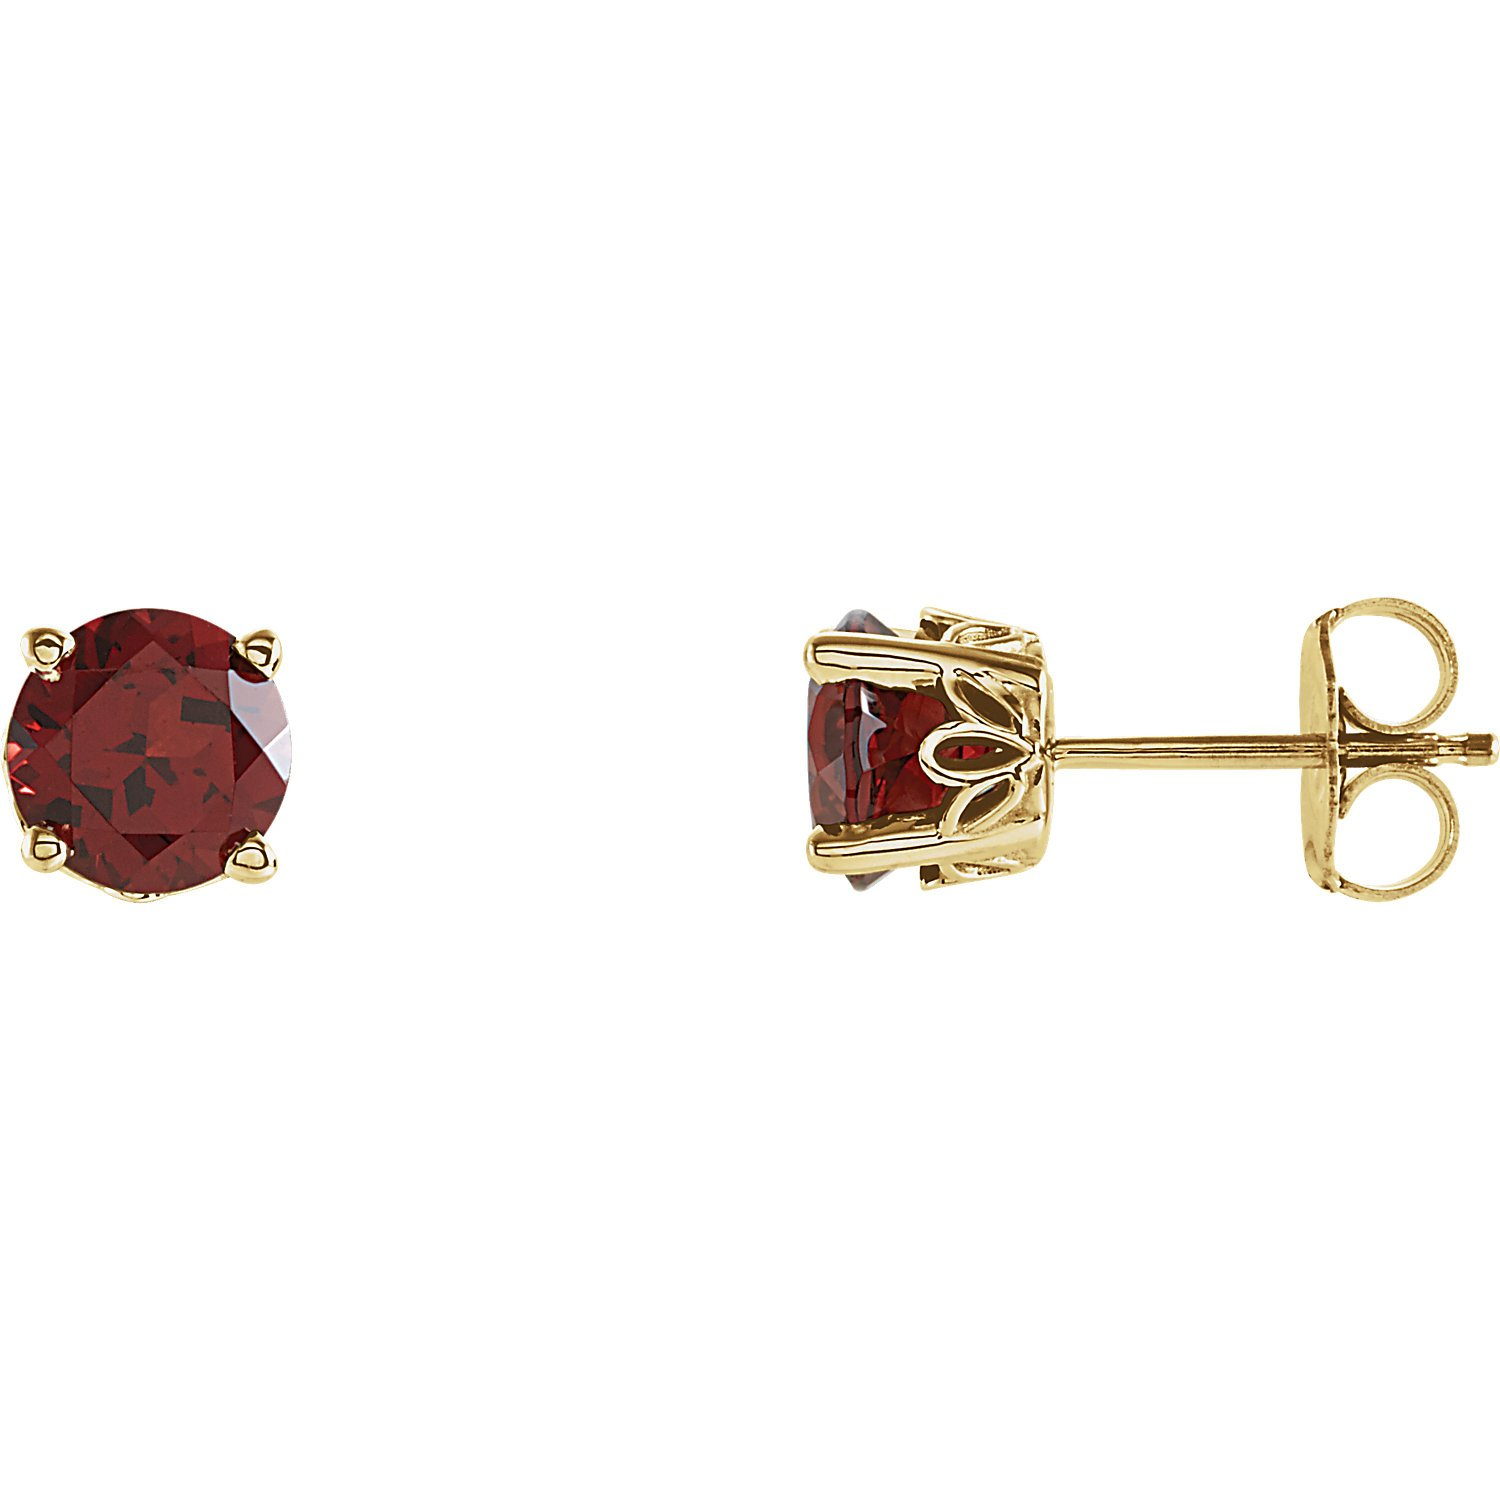 Mozambique Garnet Scroll Design Round 4-Prong Stud Earrings in 14k Polished White Gold